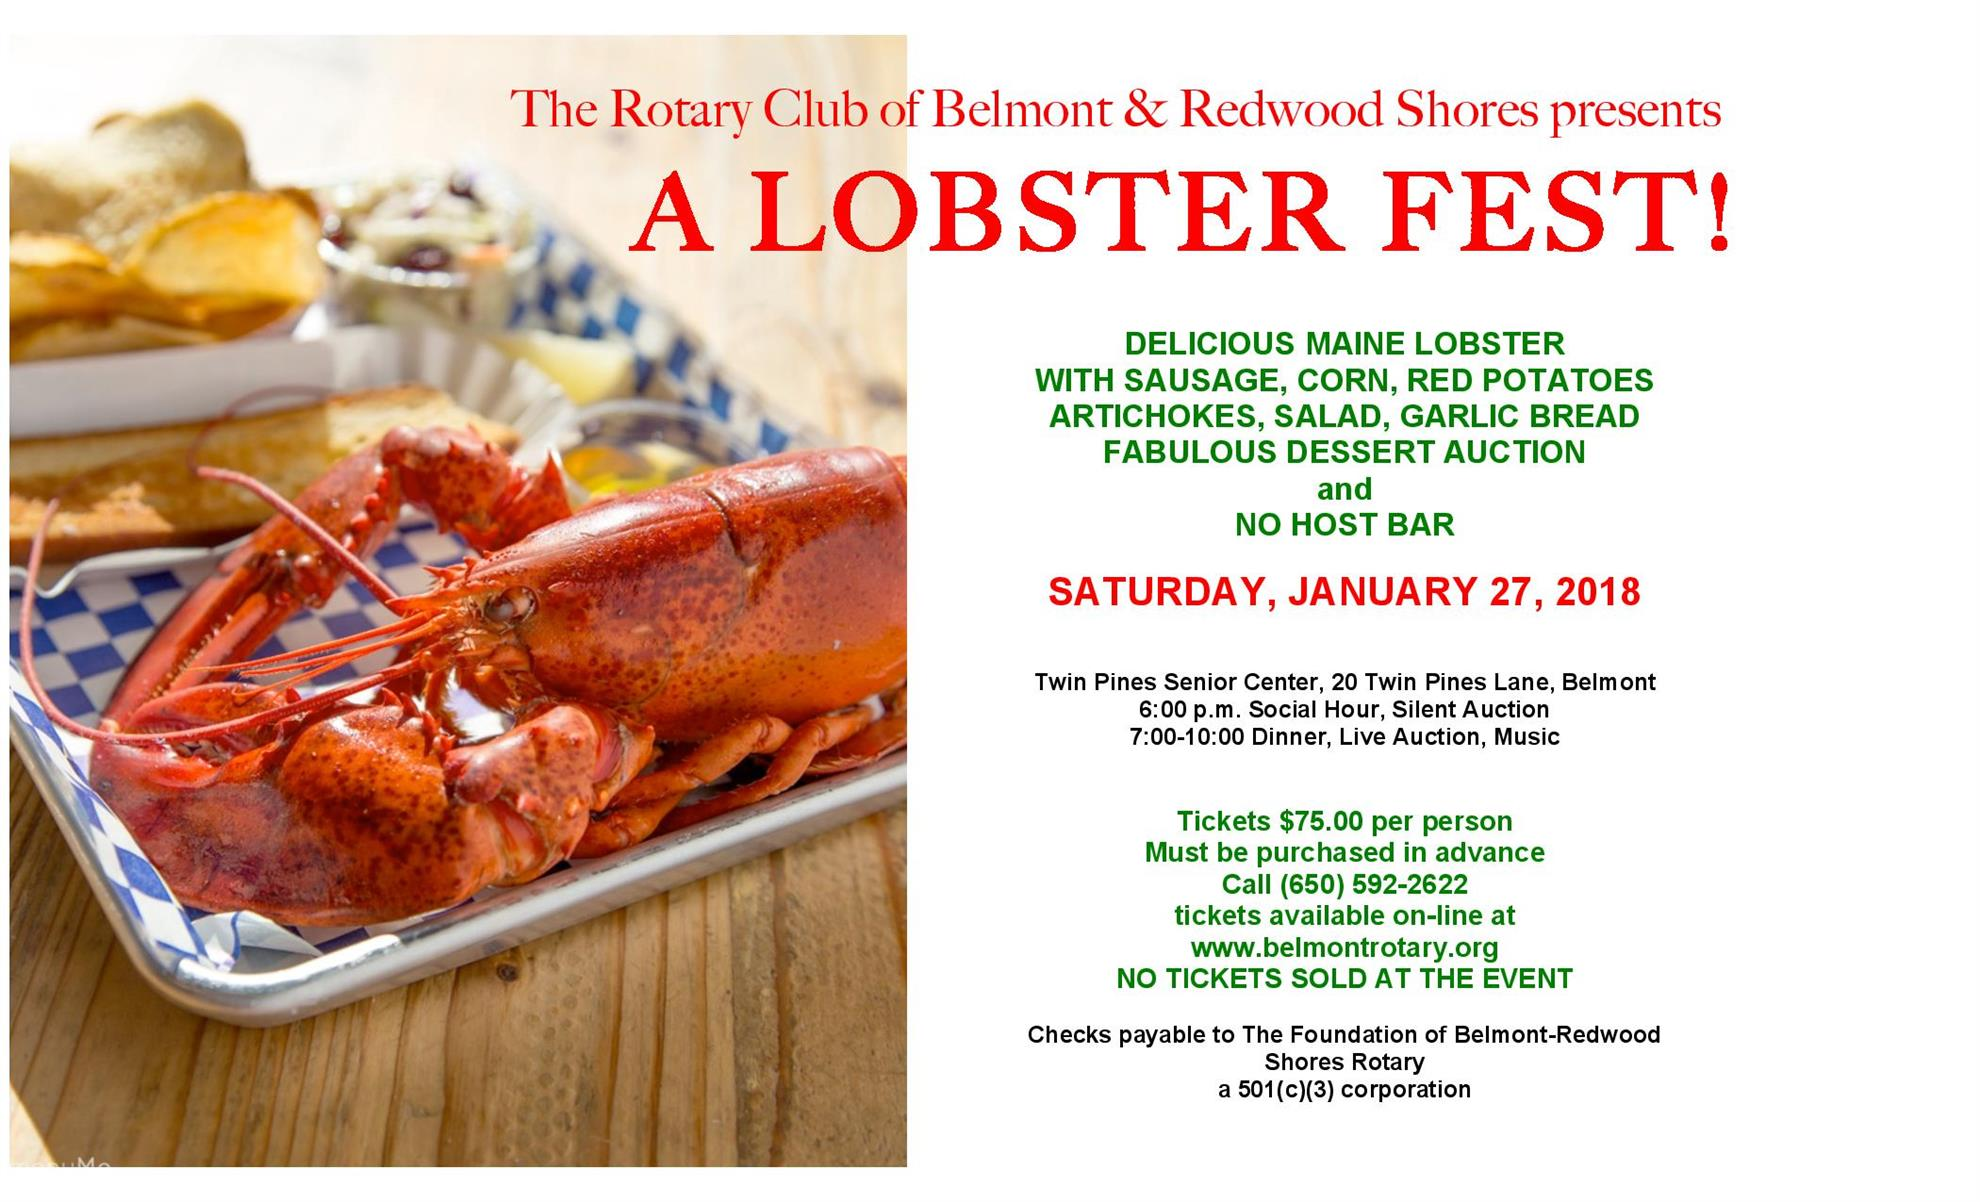 When Does Lobsterfest End At Red Lobster 2018 - Best Lobster 2017